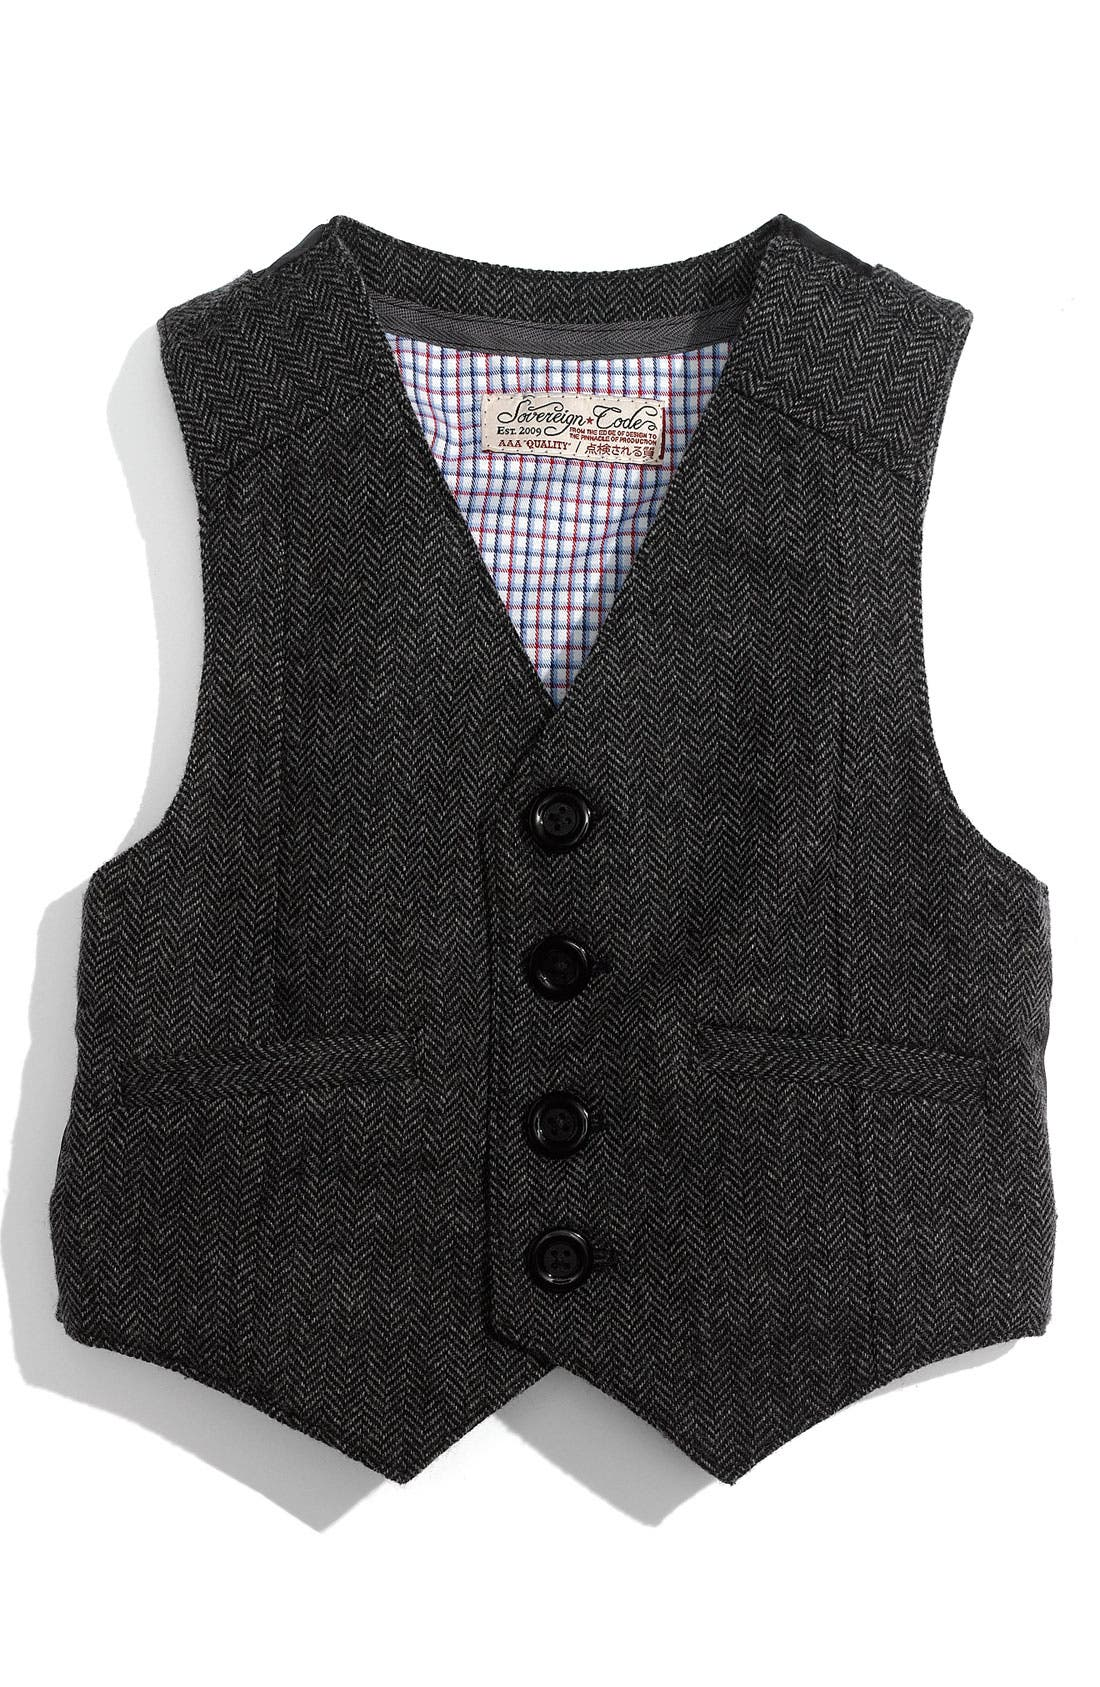 Main Image - Sovereign Code 'Lucas' Vest (Infant)